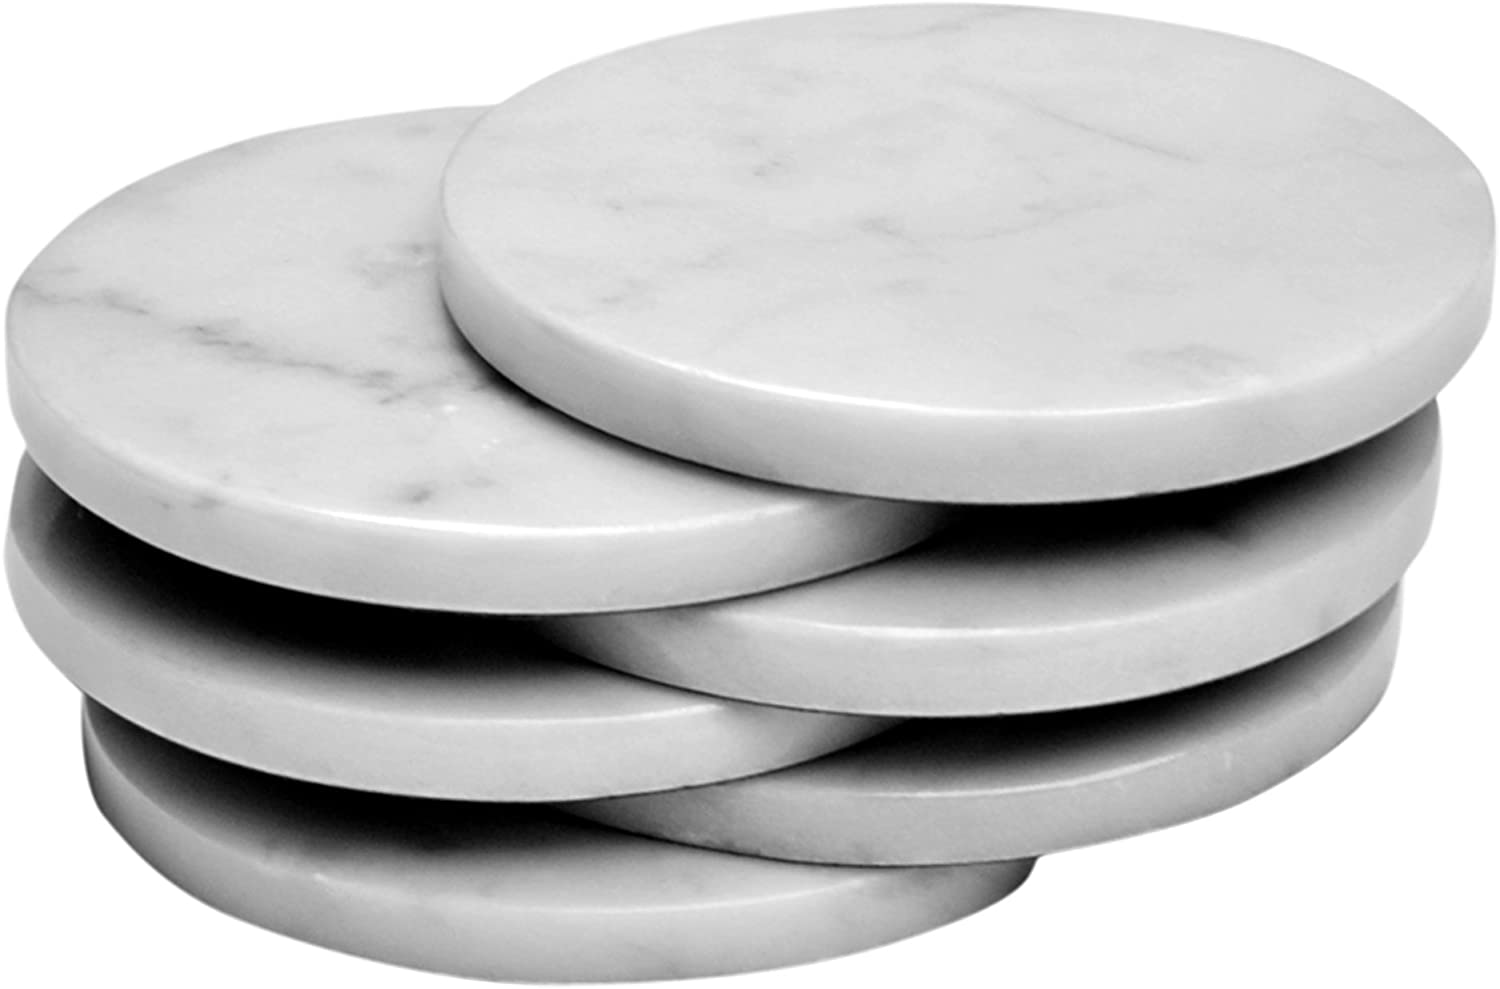 Top 12 Under $50 Christmas Gifts featured by top Seattle lifestyle blogger, Marcie in Mommyland: white marble coaster set